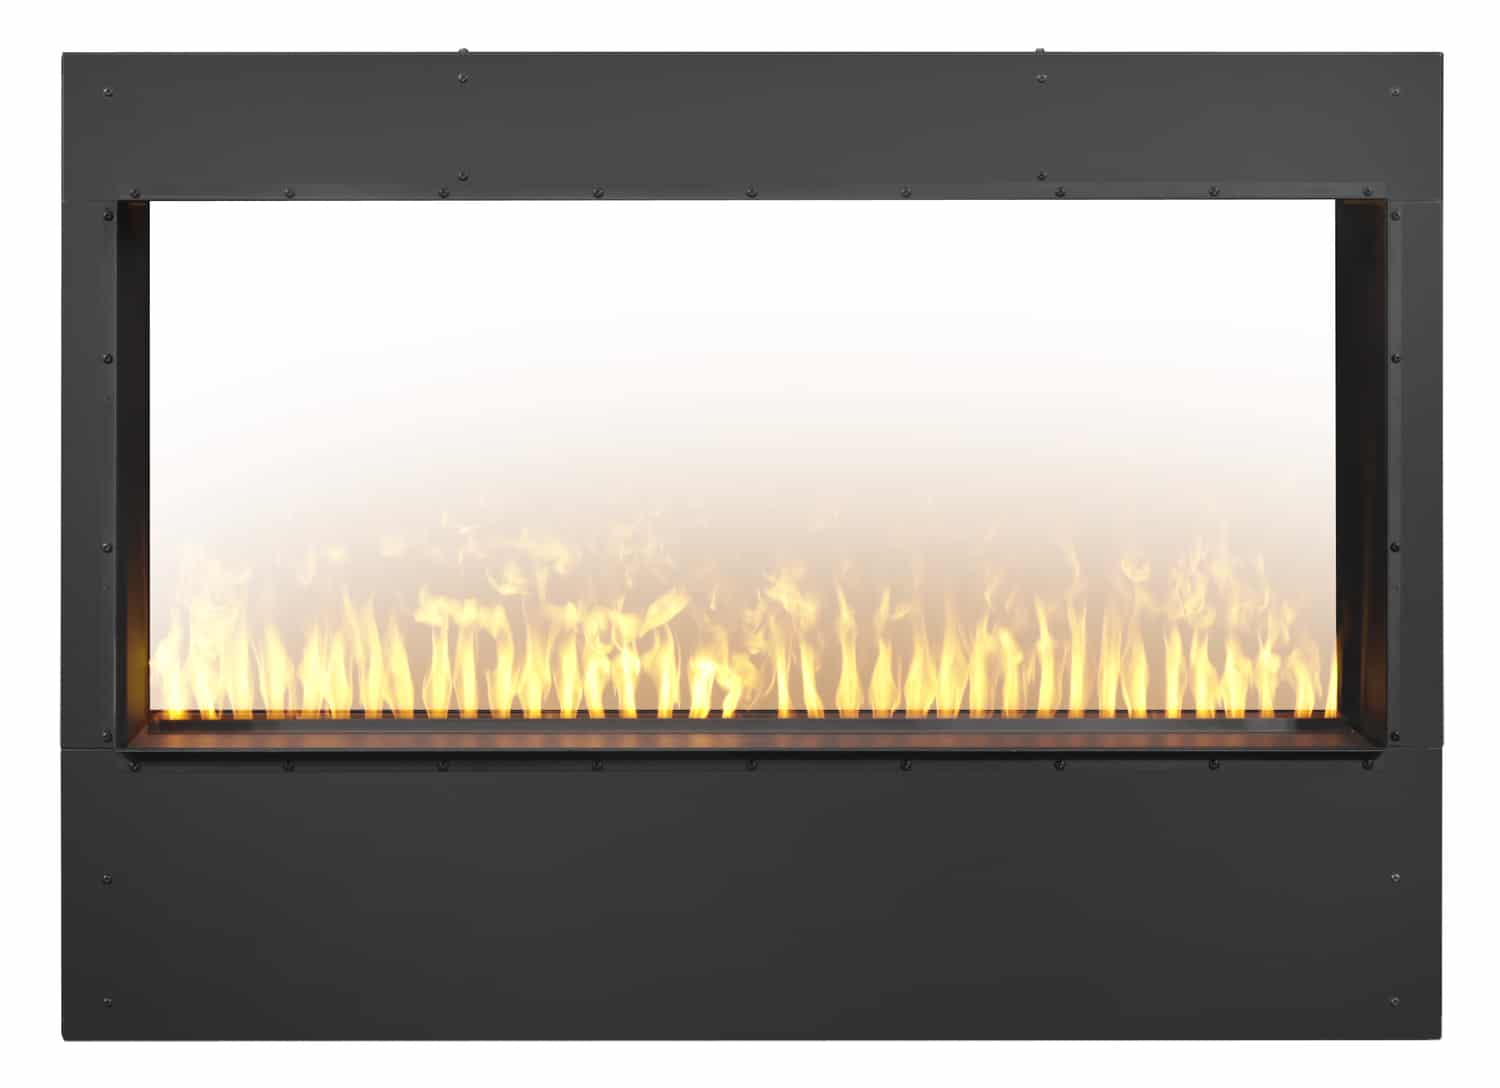 electric game fire fireplace opti realistic myst enough load is the